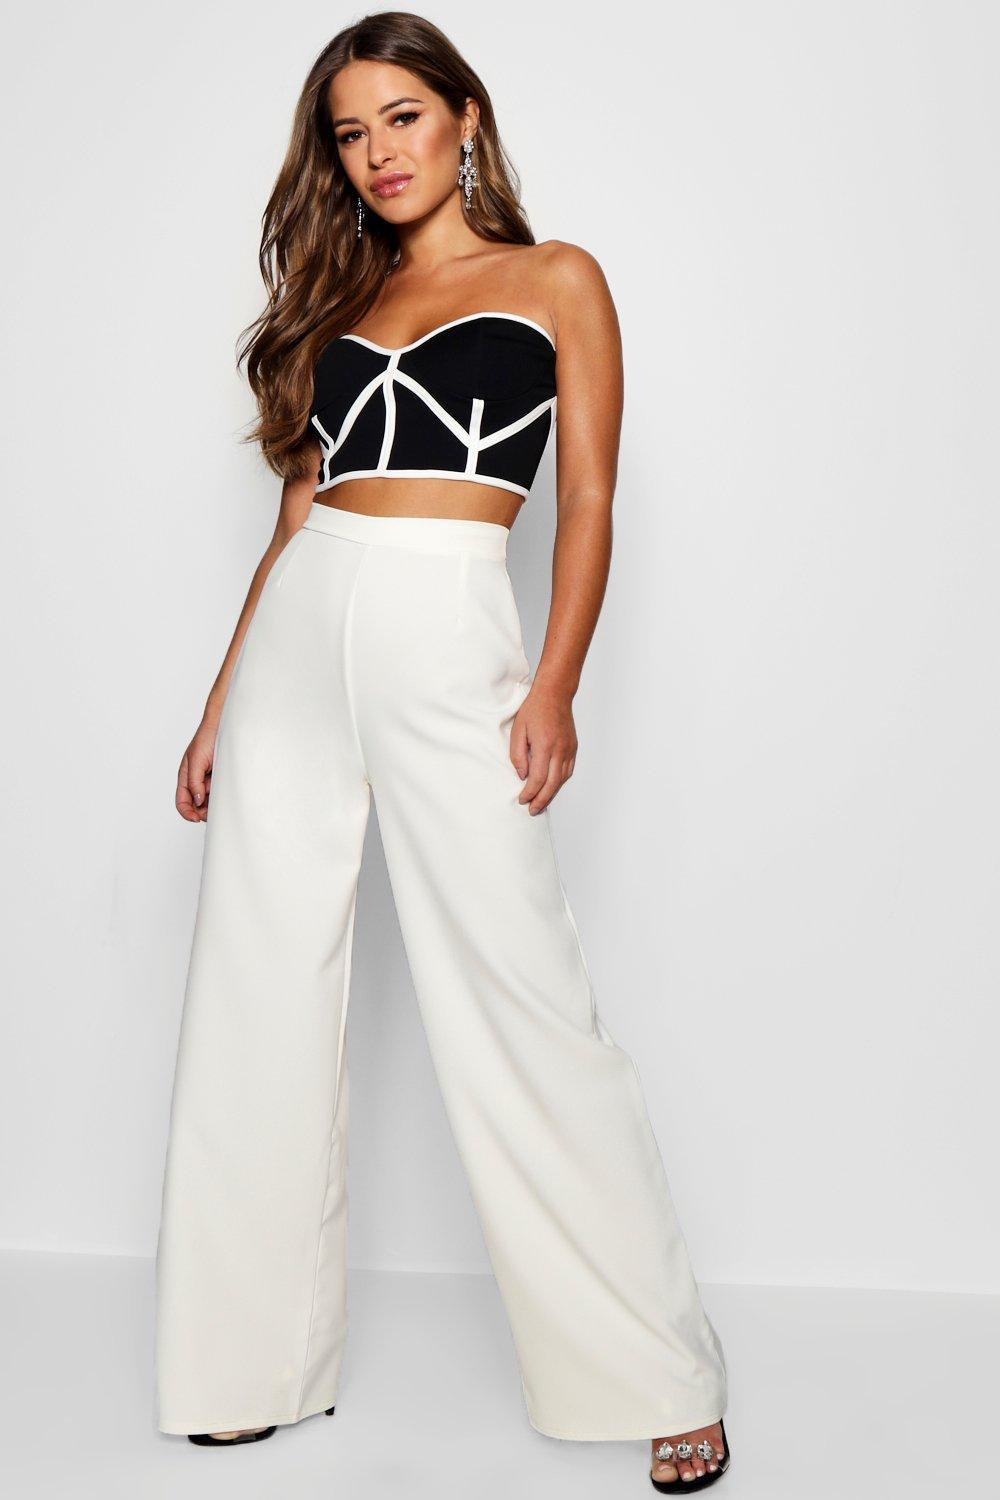 Boohoo Shelby High Waisted Woven Wide Leg Trousers Pick A Best Sale Online Cheap Sale Extremely Clearance 2018 Newest Factory Sale 0giJbyitxH